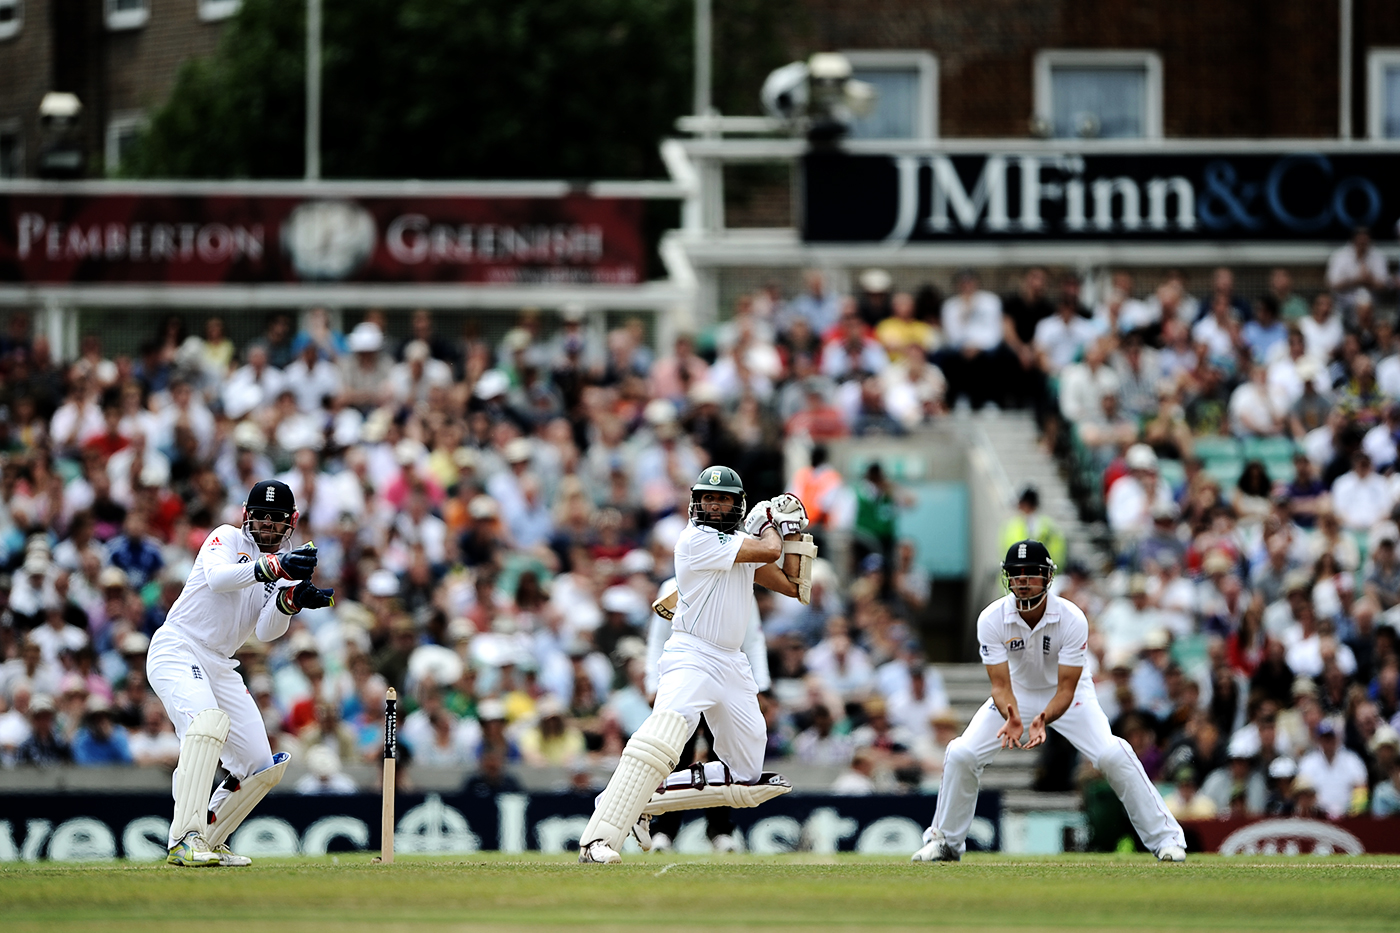 First triple-century by a South African in Tests? That would be Amla, at The Oval in 2012